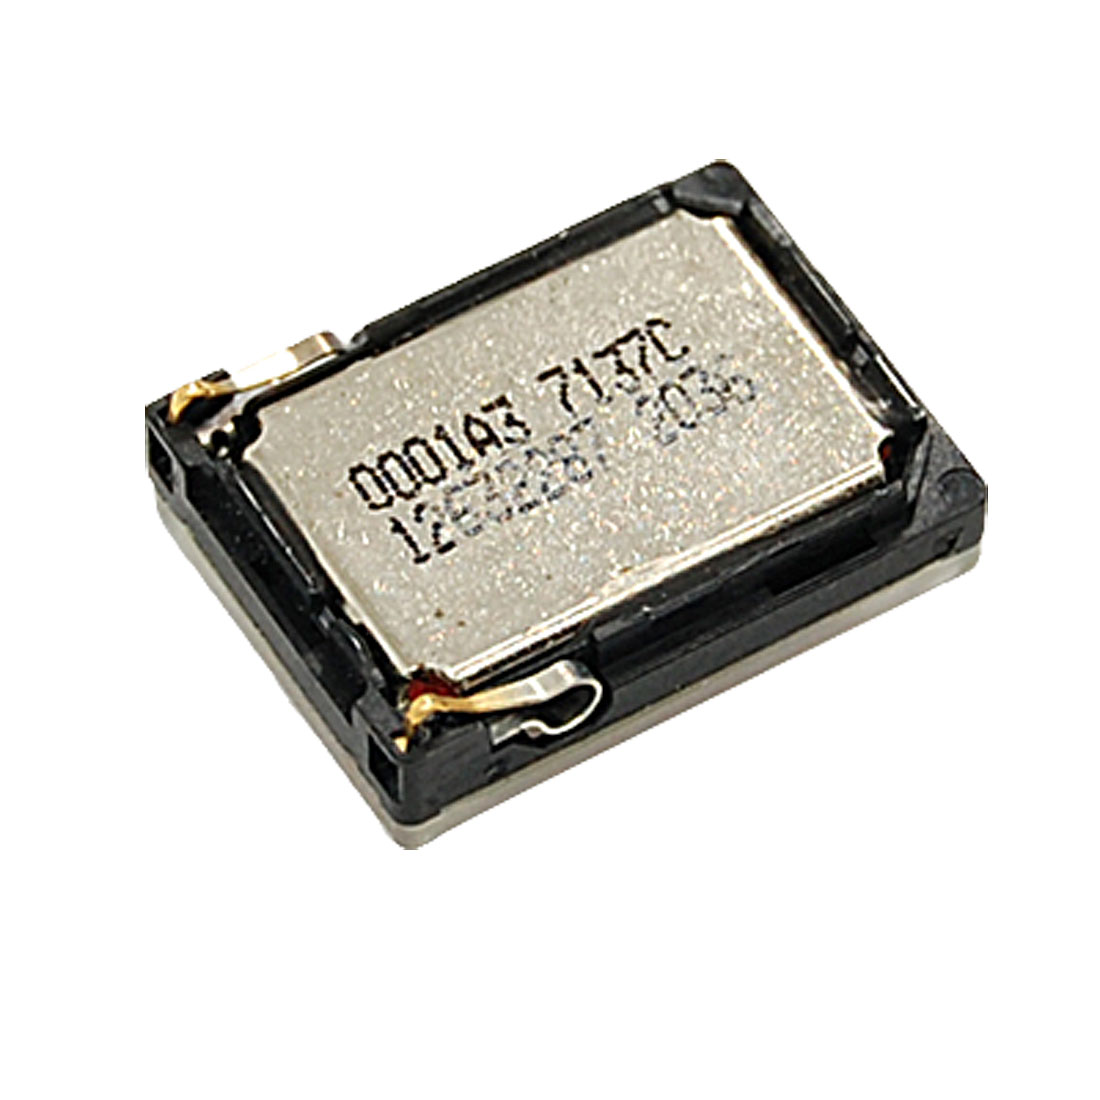 Replacement Buzzer Ringer Loud Speaker for Nokia N81